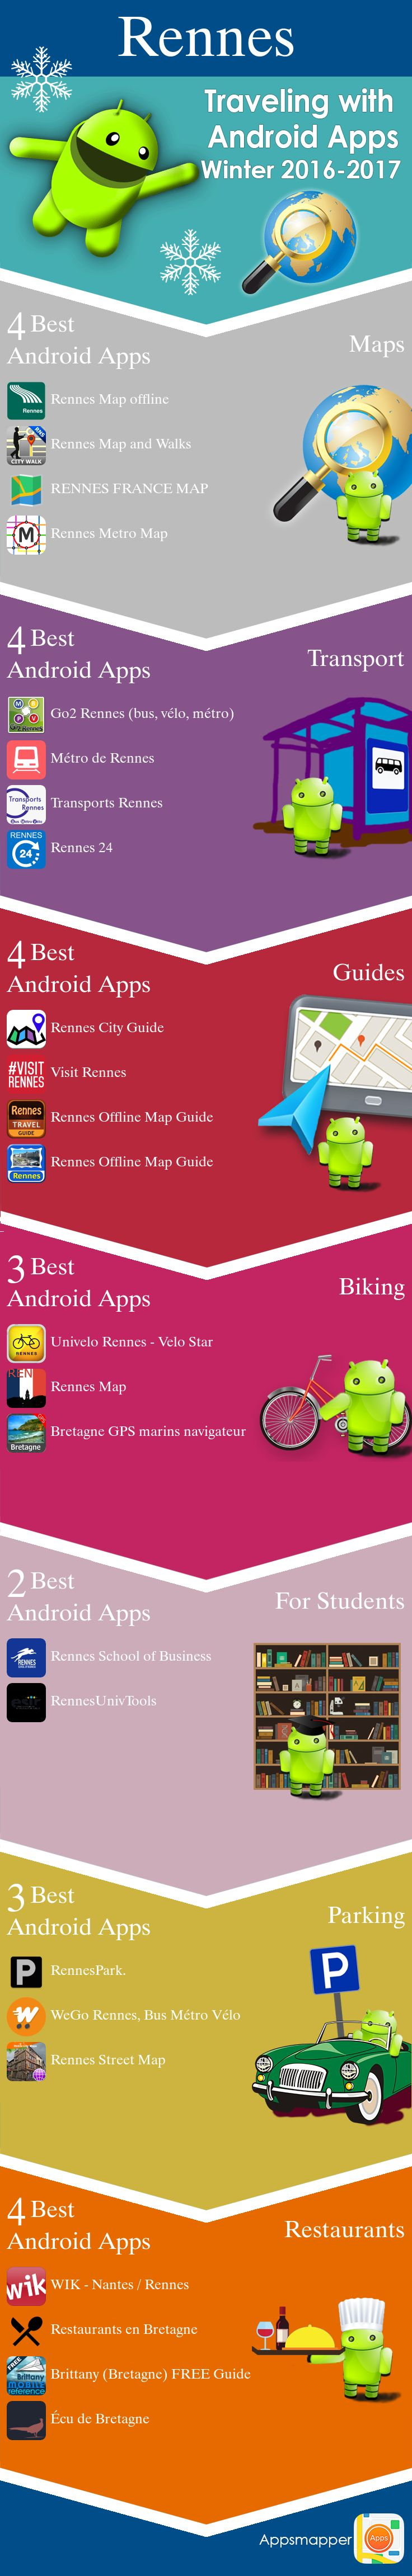 Rennes Android apps: Travel Guides, Maps, Transportation, Biking, Museums, Parking, Sport and apps for Students.